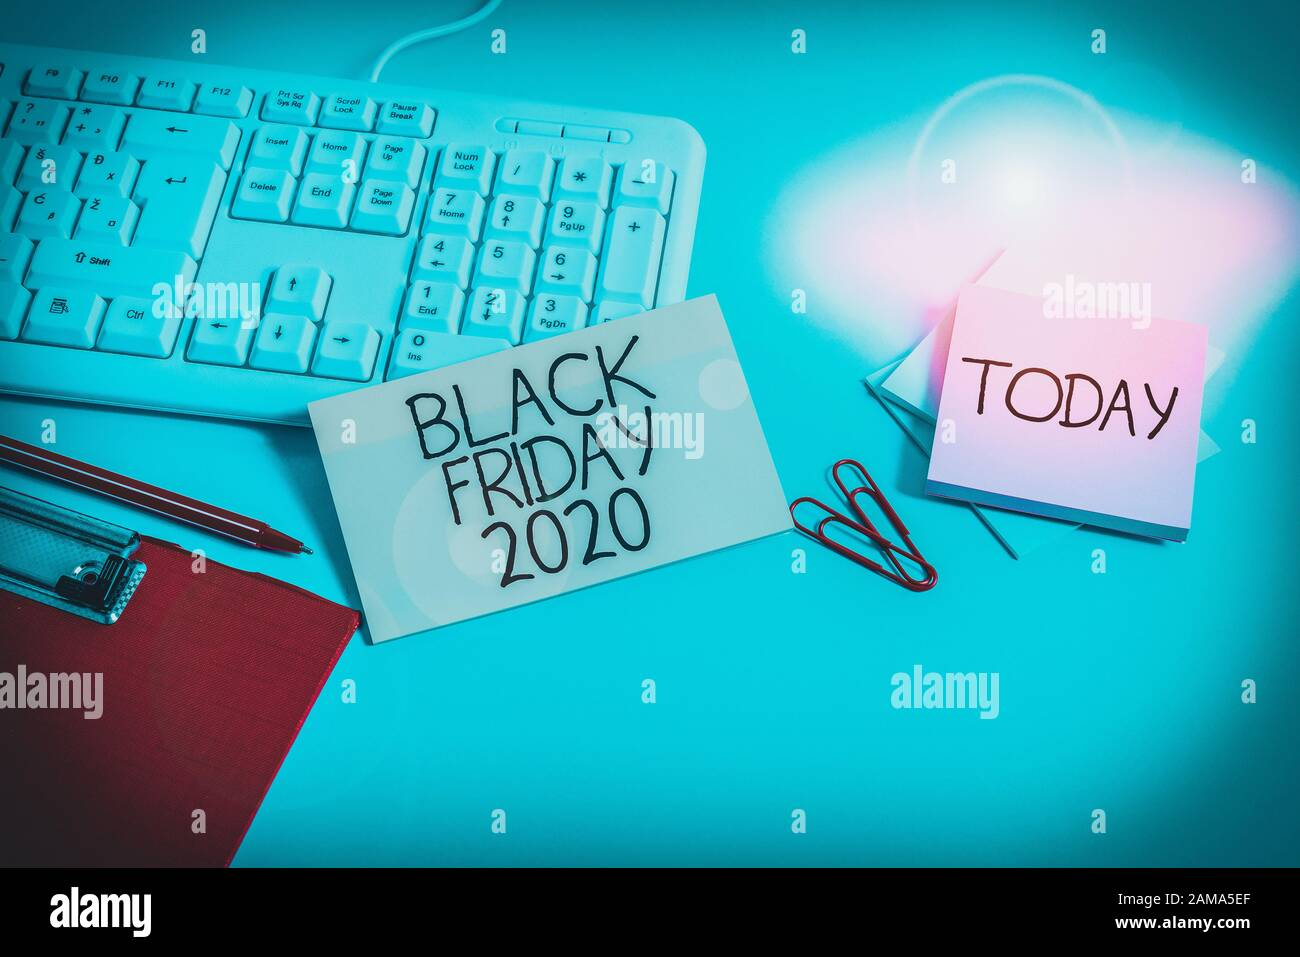 Word Writing Text Black Friday 2020 Business Photo Showcasing Day Following Thanksgiving Discounts Shopping Day Paper Blue Desk Computer Keyboard Off Stock Photo Alamy